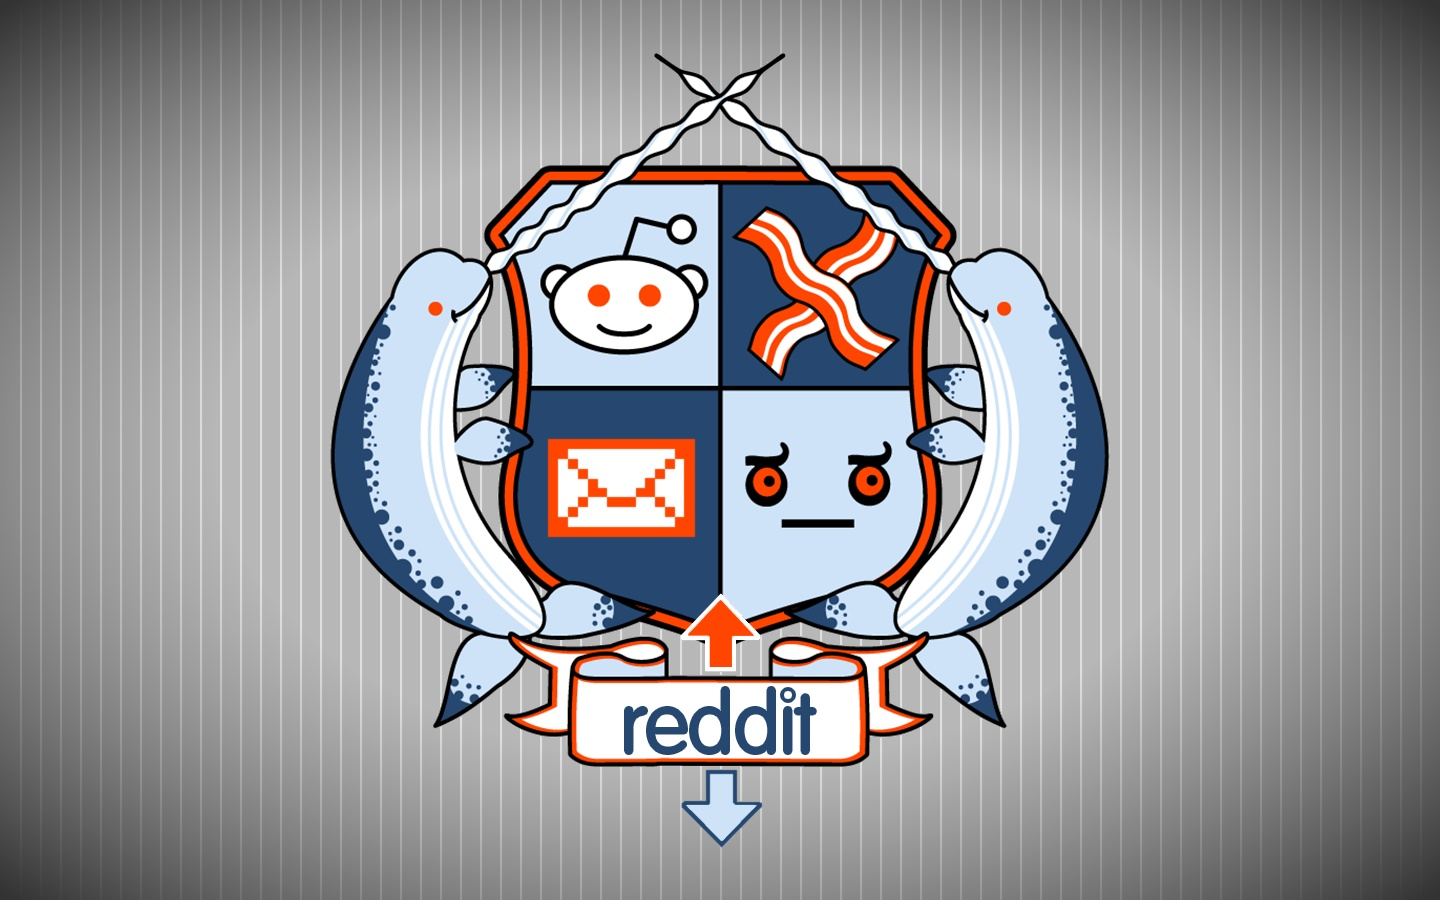 Someone created a reddit Coat of Arms and it featured both narwhals 1440x900